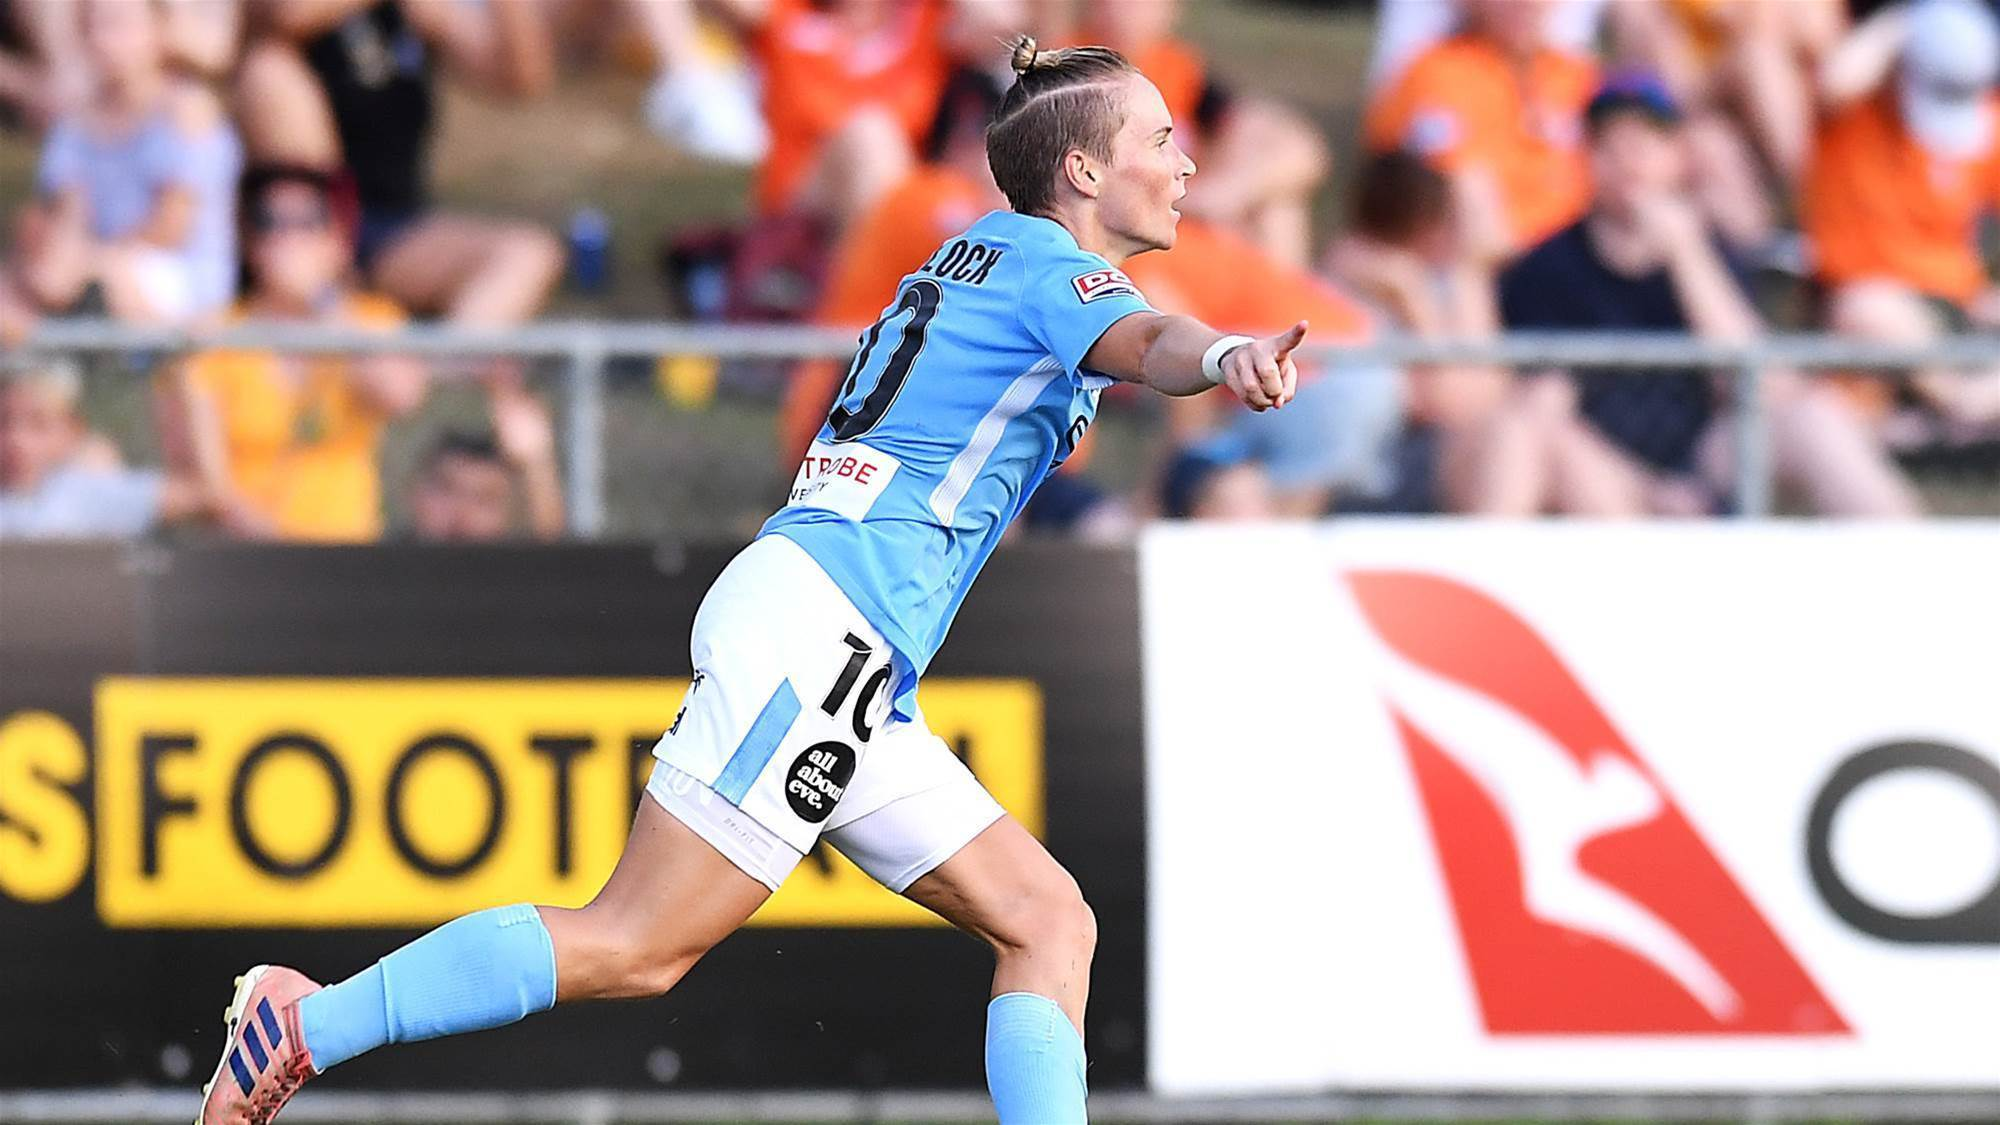 Fishlock won't line up for City